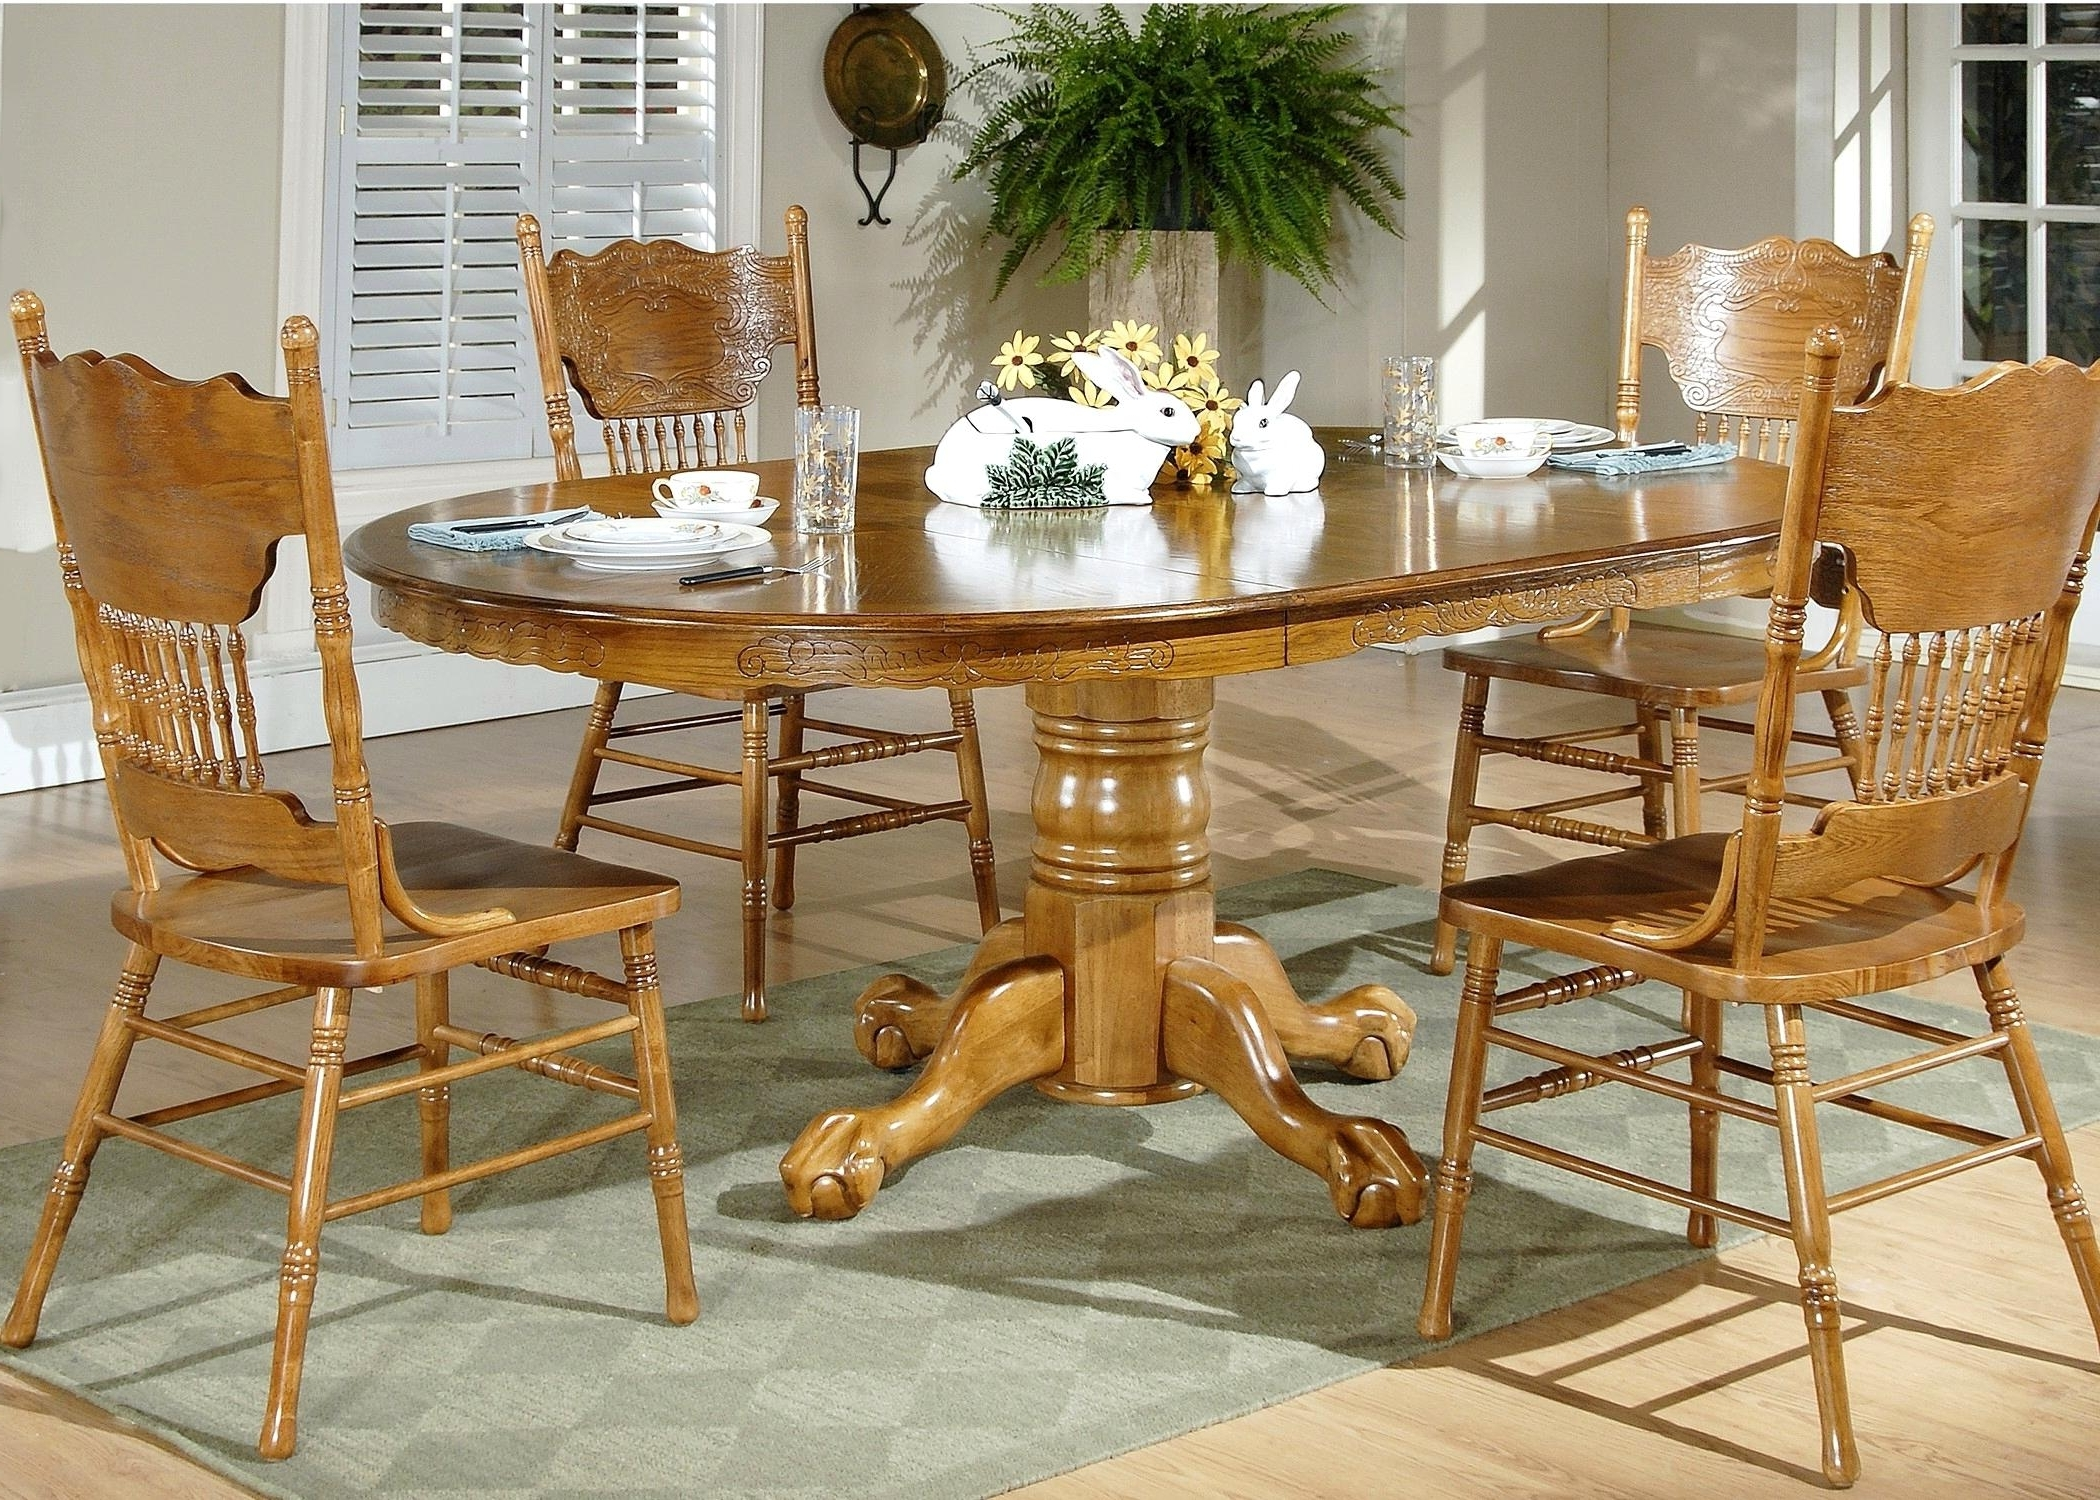 Most Current Oval Oak Dining Tables And Chairs For Extraordinary Oval Oak Dining Table Chairs N Table And Chairs Dublin (View 5 of 25)